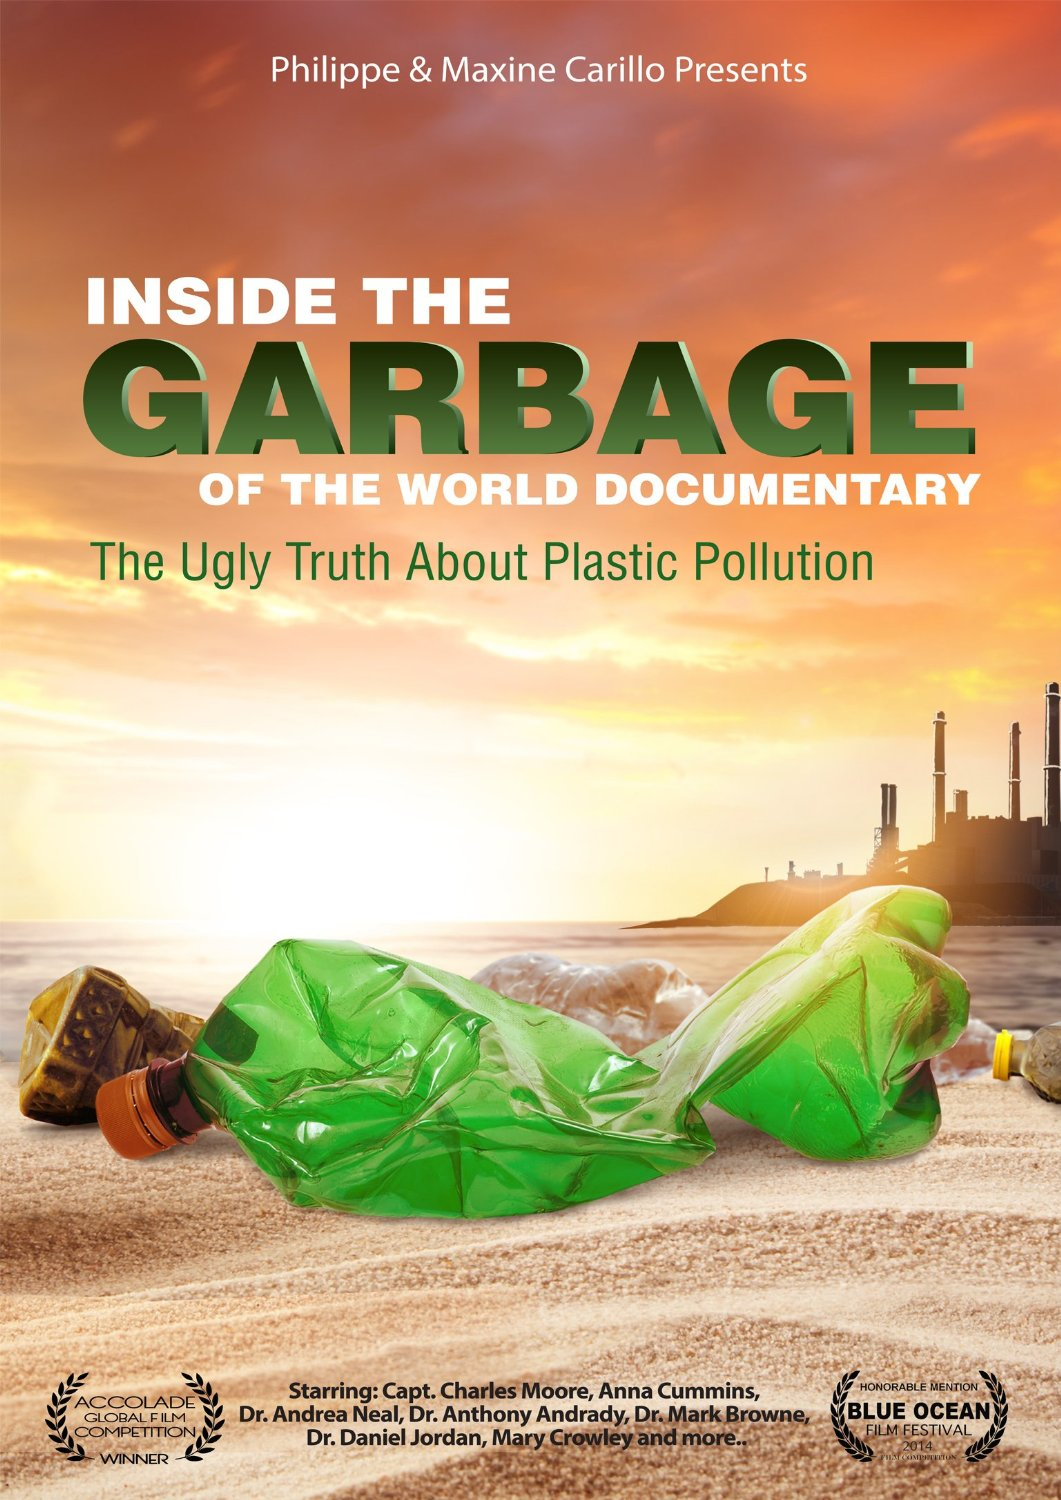 Inside The Garbage Of The World Documentary. What I found interesting and my thoughts on the film.